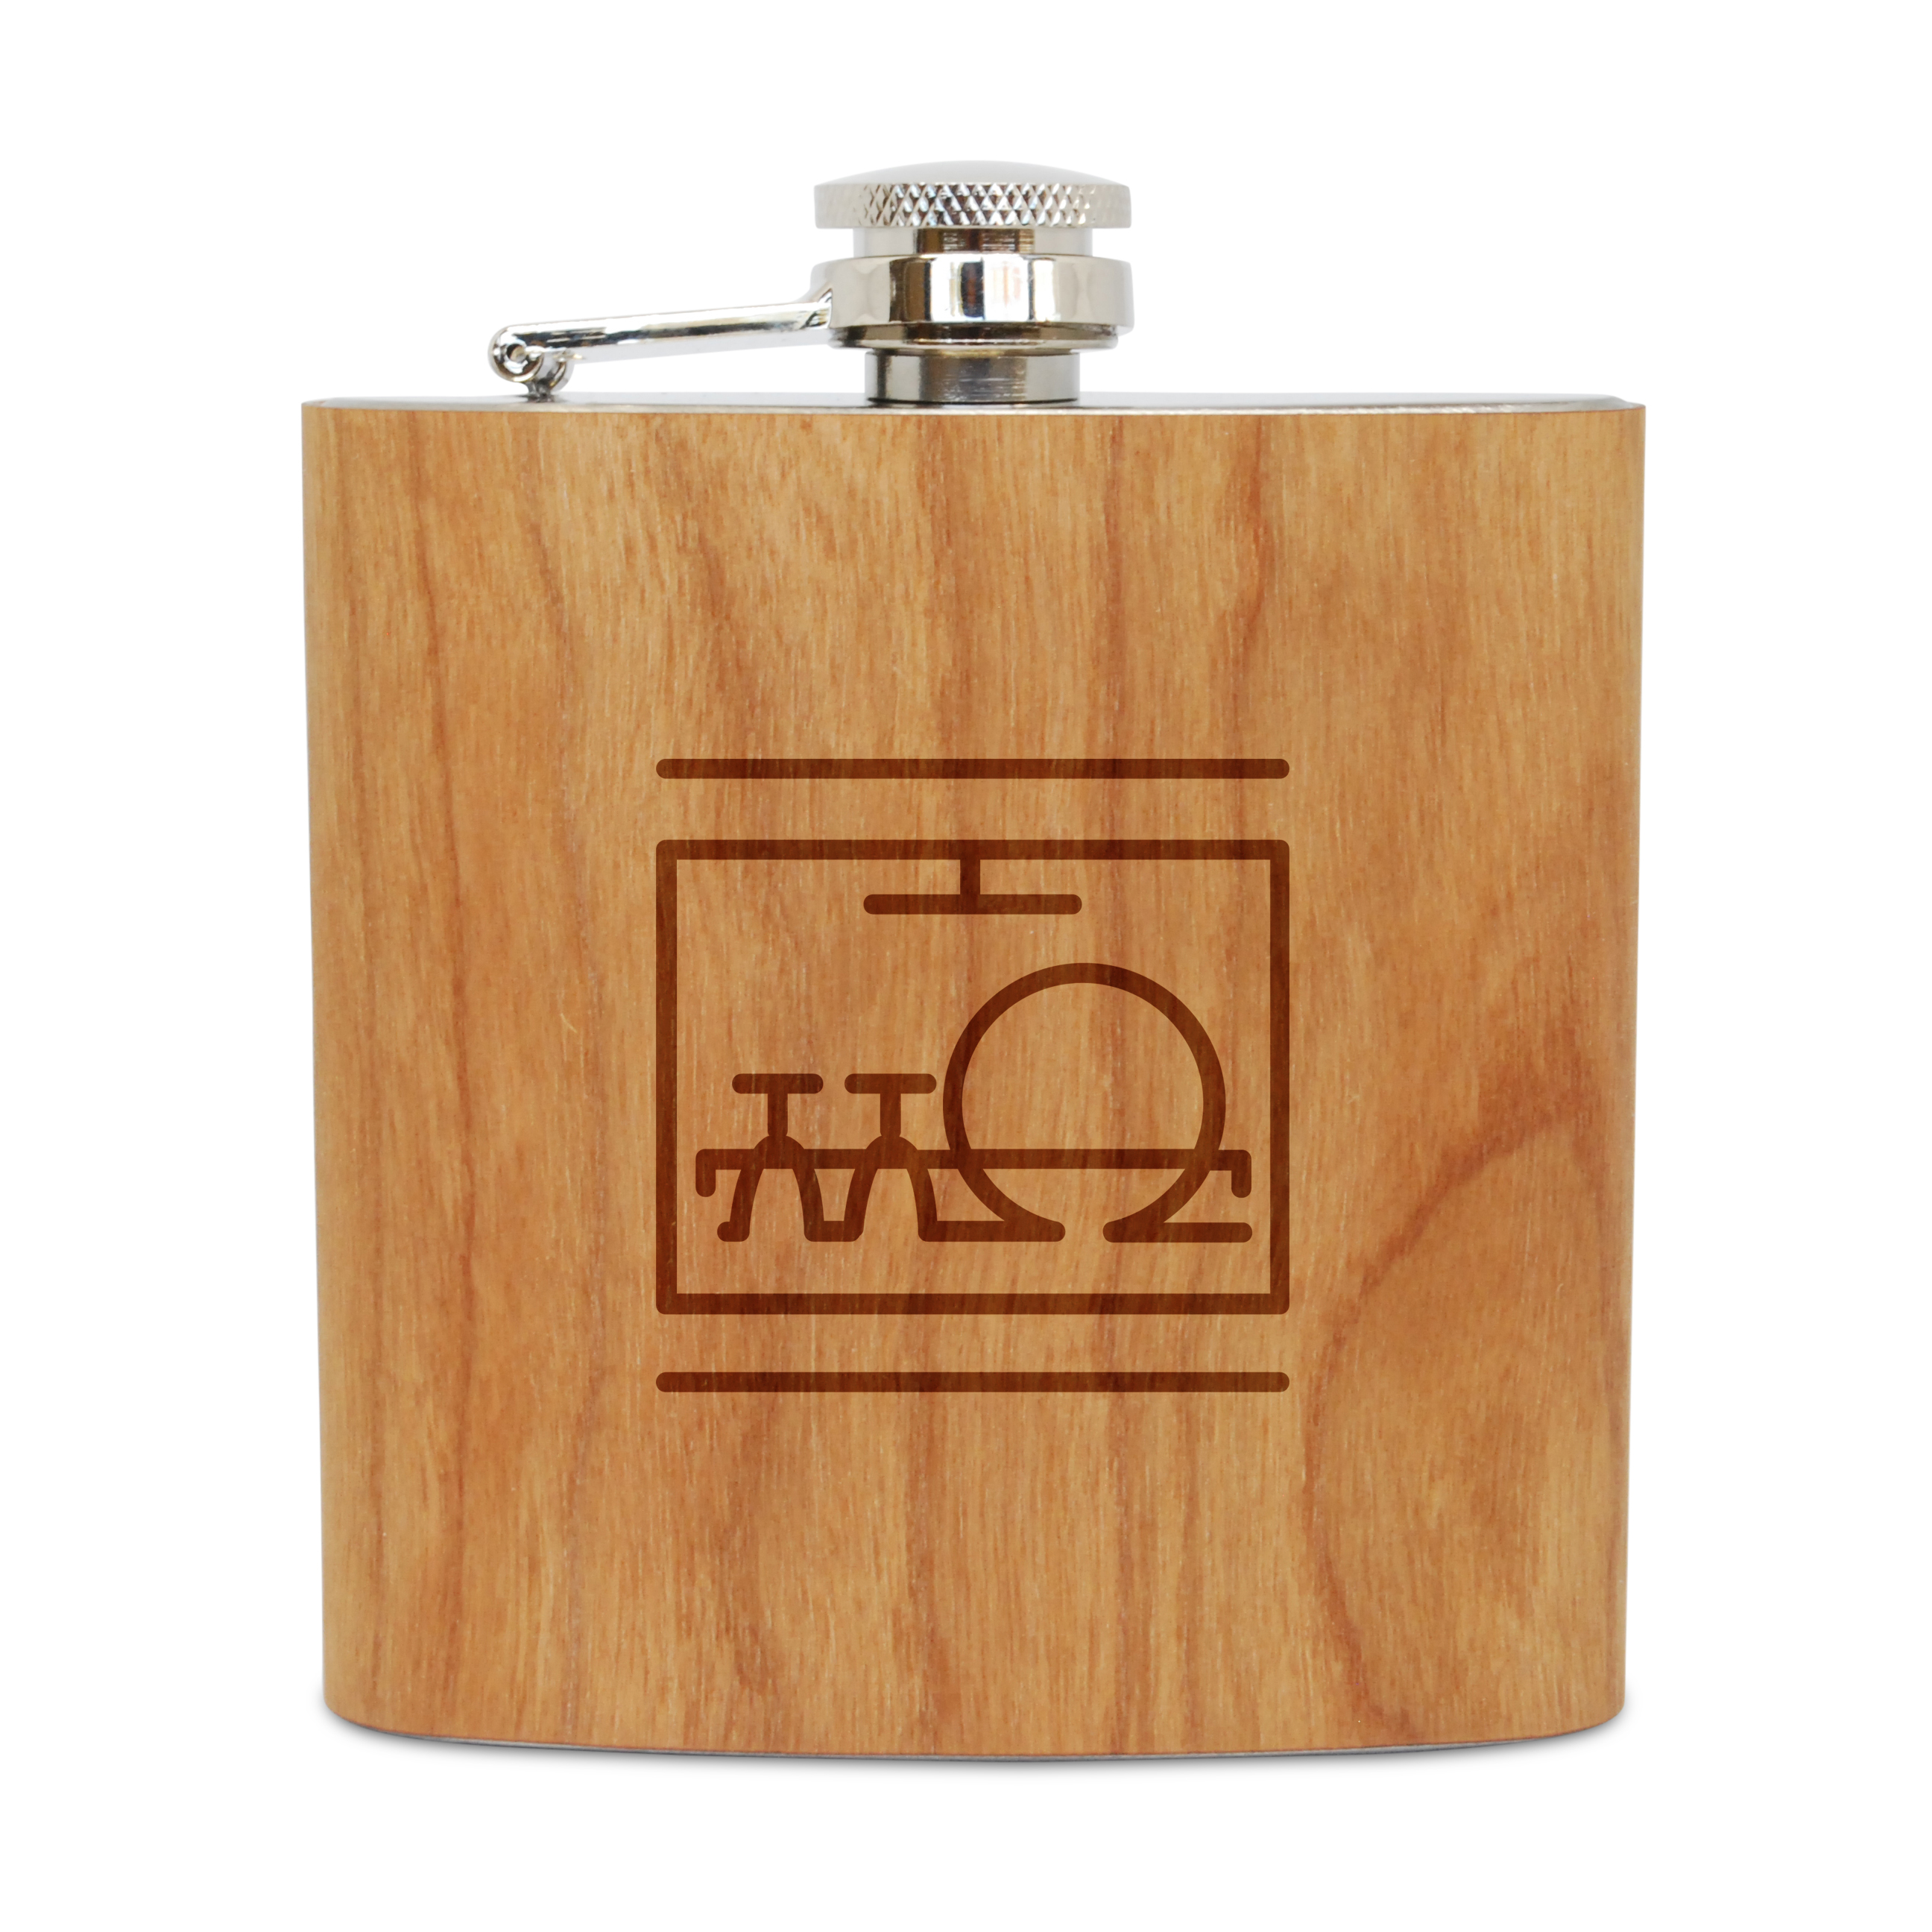 Dishwasher 6 Oz Wooden Flask (Cherry), Stainless Steel Body, Handmade In Usa